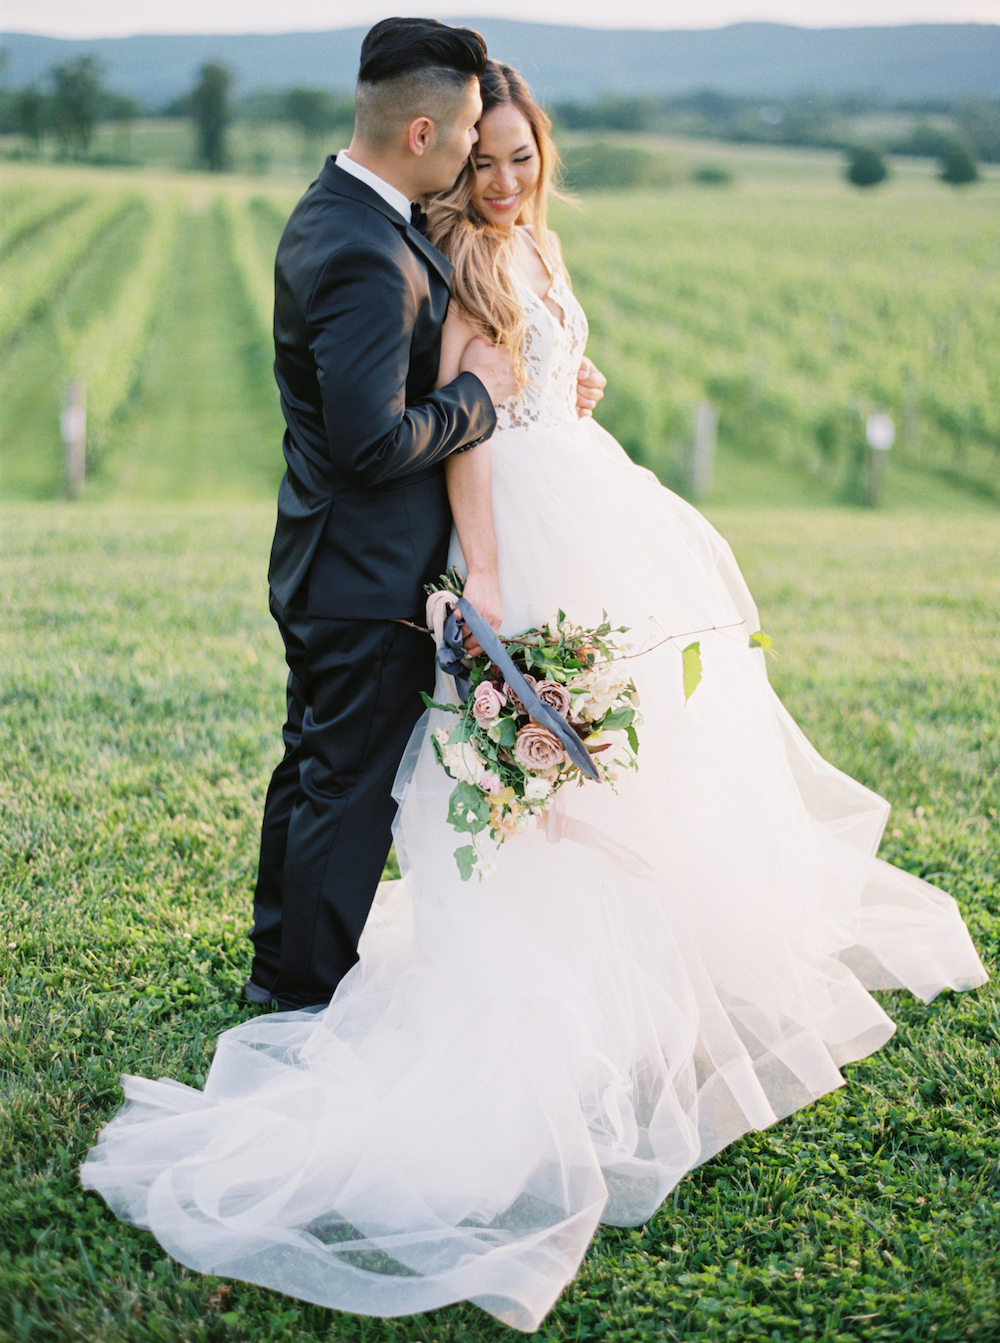 Organic Romantic Breaux Vineyard DC Wedding Planner A Griffin Events 531.jpg